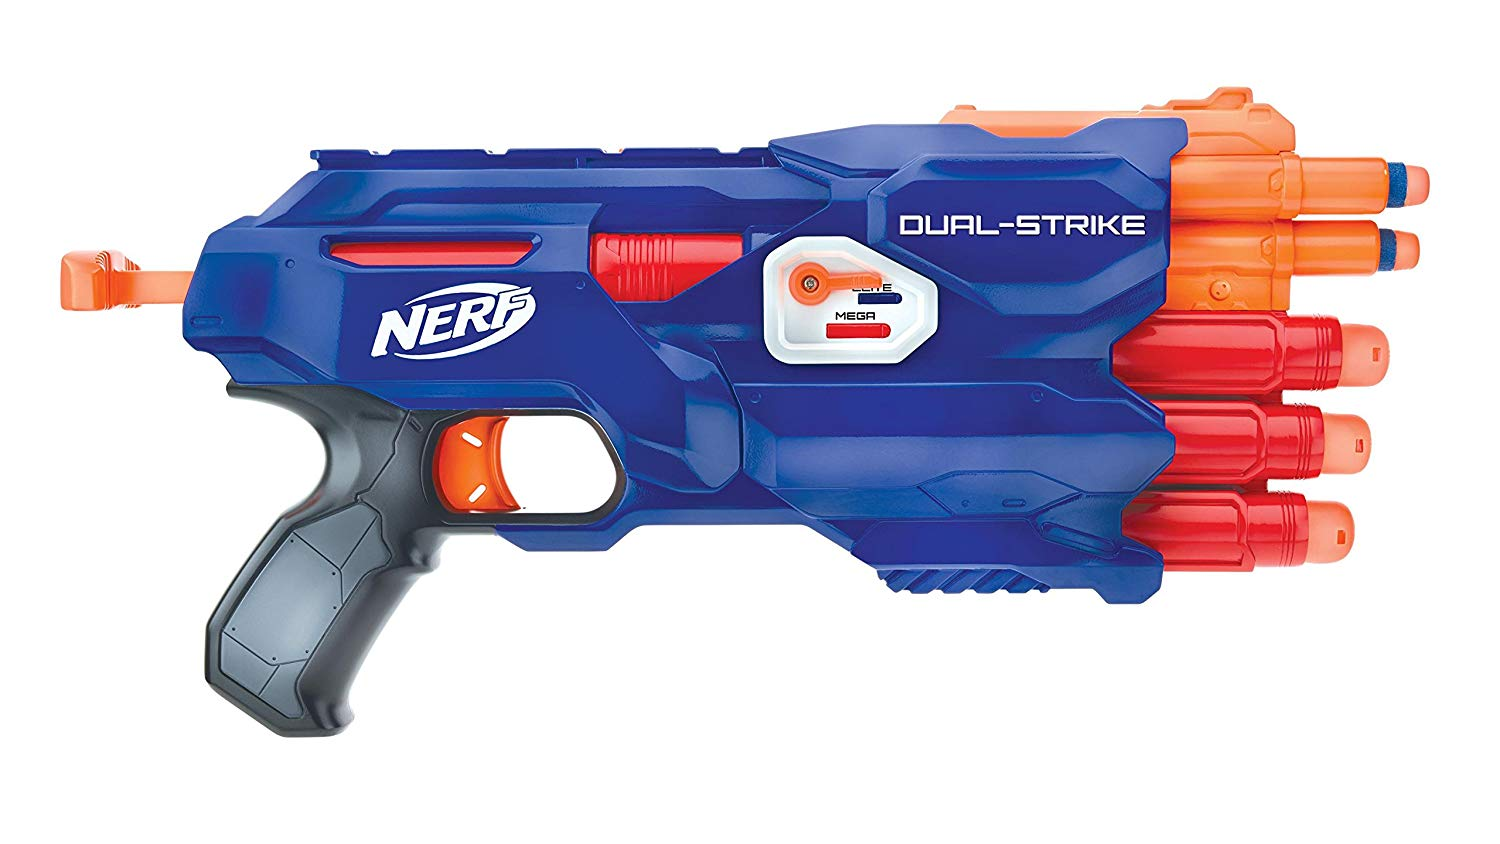 Nerf Special Edition Dual Strike Elite and Mega Blaster With Bonus Double Dart Ammo-kids toys, nerf toys, outdoor toys, boy toys, girl toys